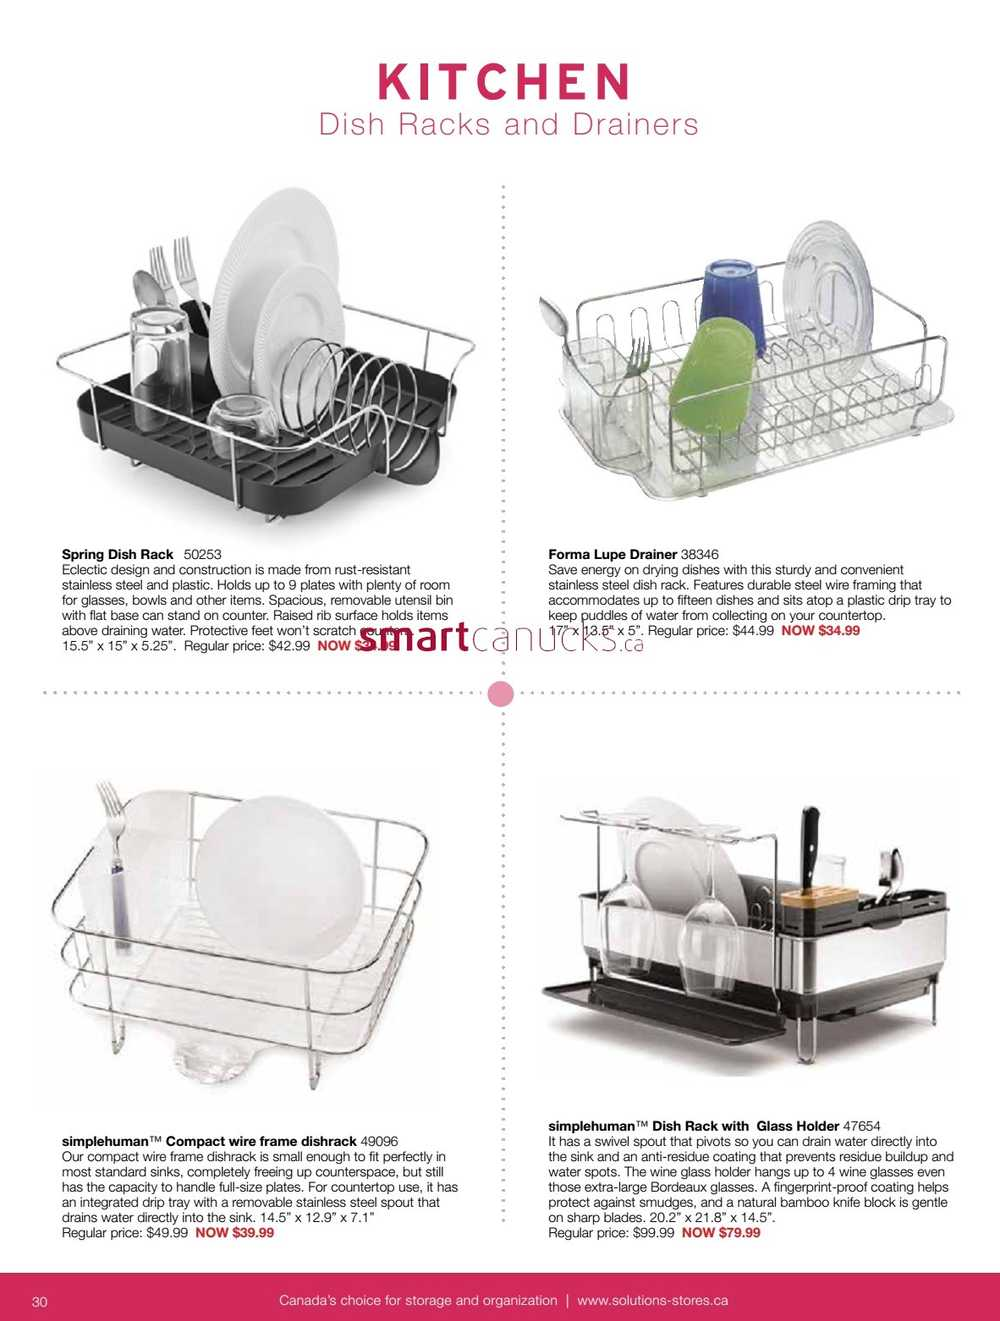 Old Fashioned Simplehuman Compact Wire Frame Dishrack Adornment ...